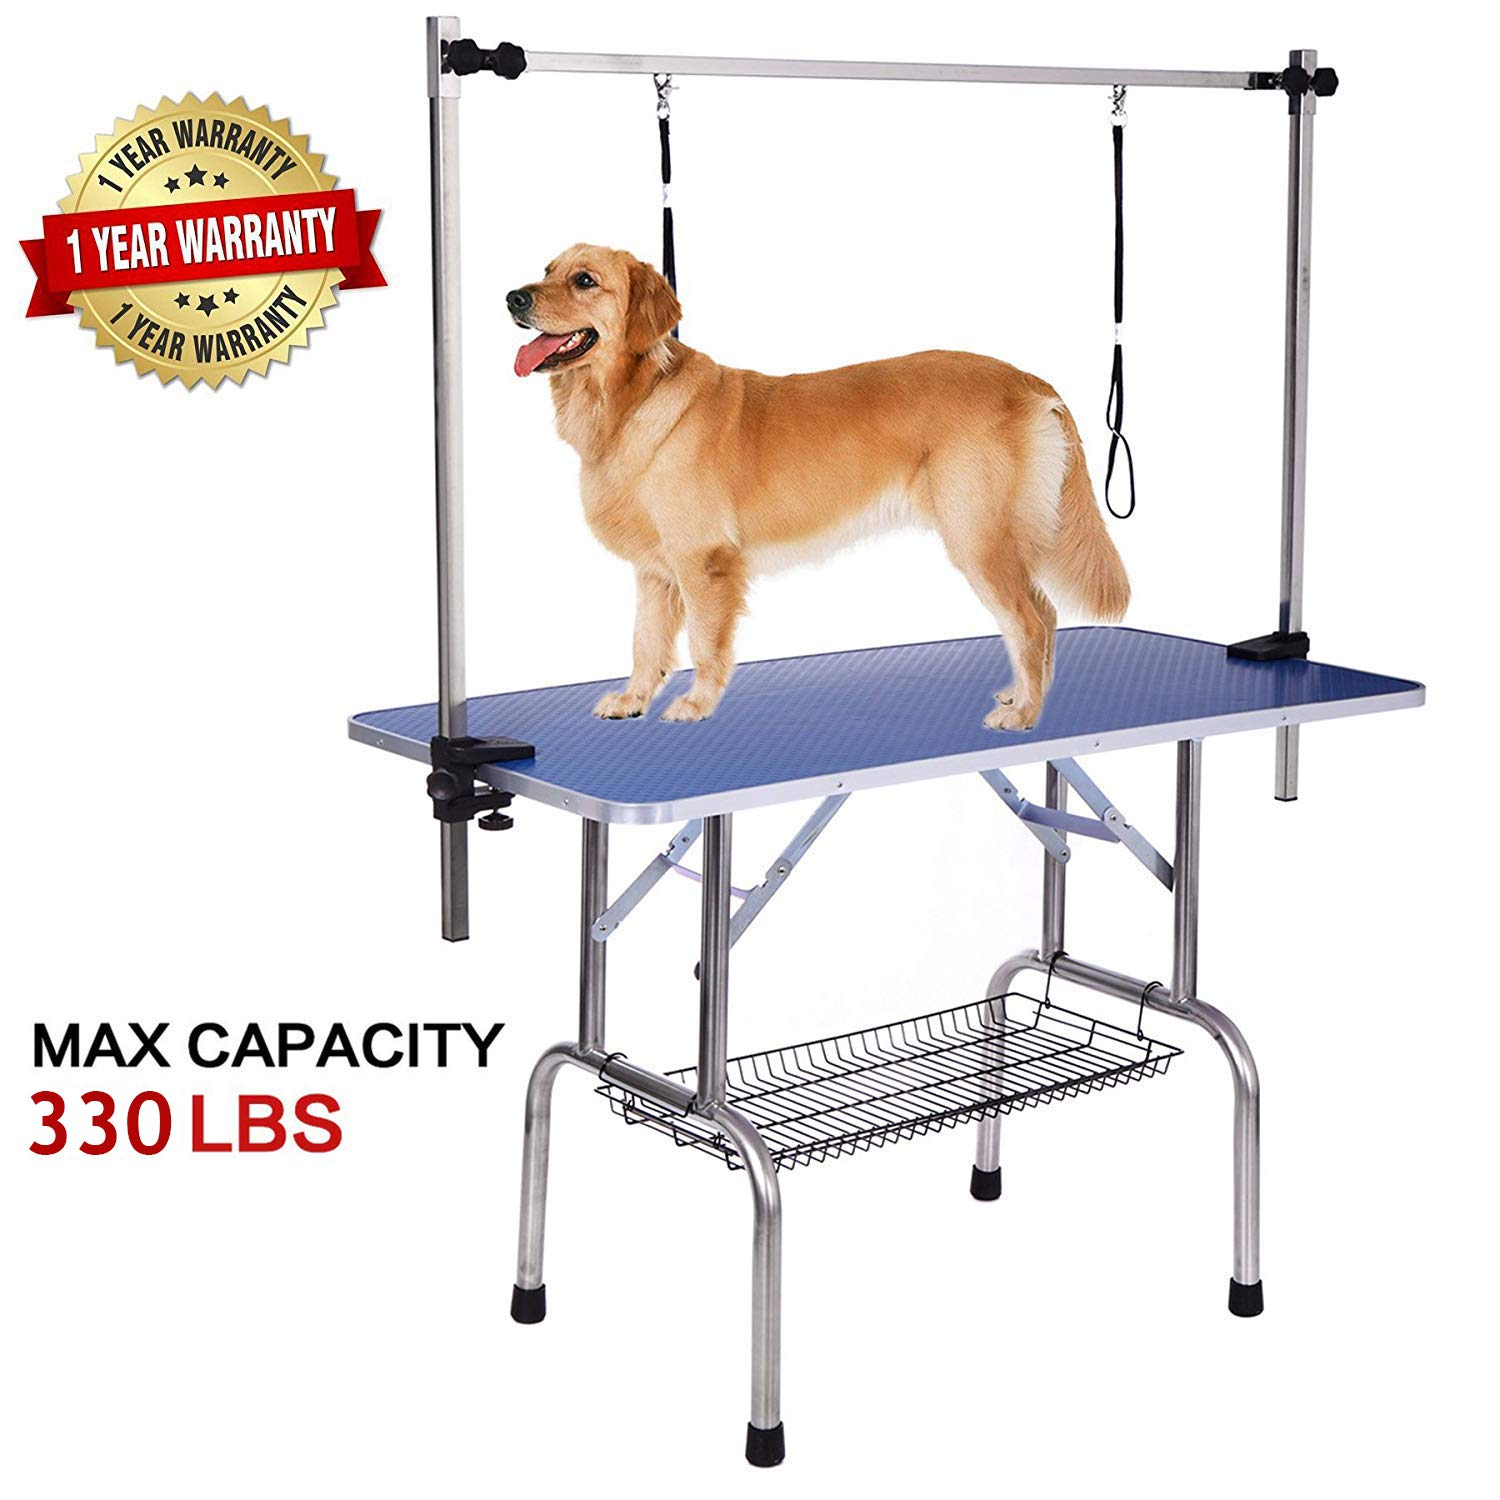 Professional Dog Pet Grooming Table Large Adjustable Heavy Duty Portable w/Arm & Noose & Mesh Tray, Maximum Capacity Up to 330LB by HAIGE PET Your Pet Nanny